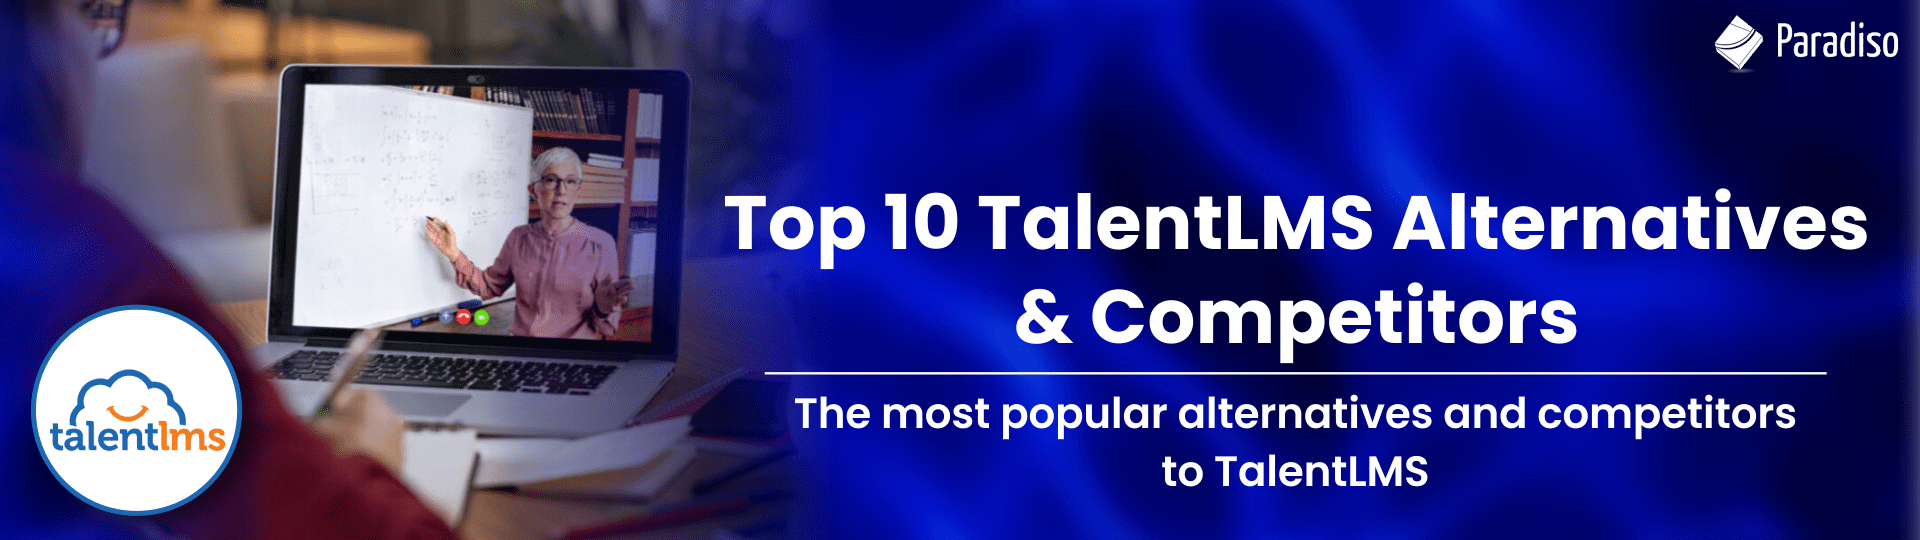 TalentLMS alternatives and competitors